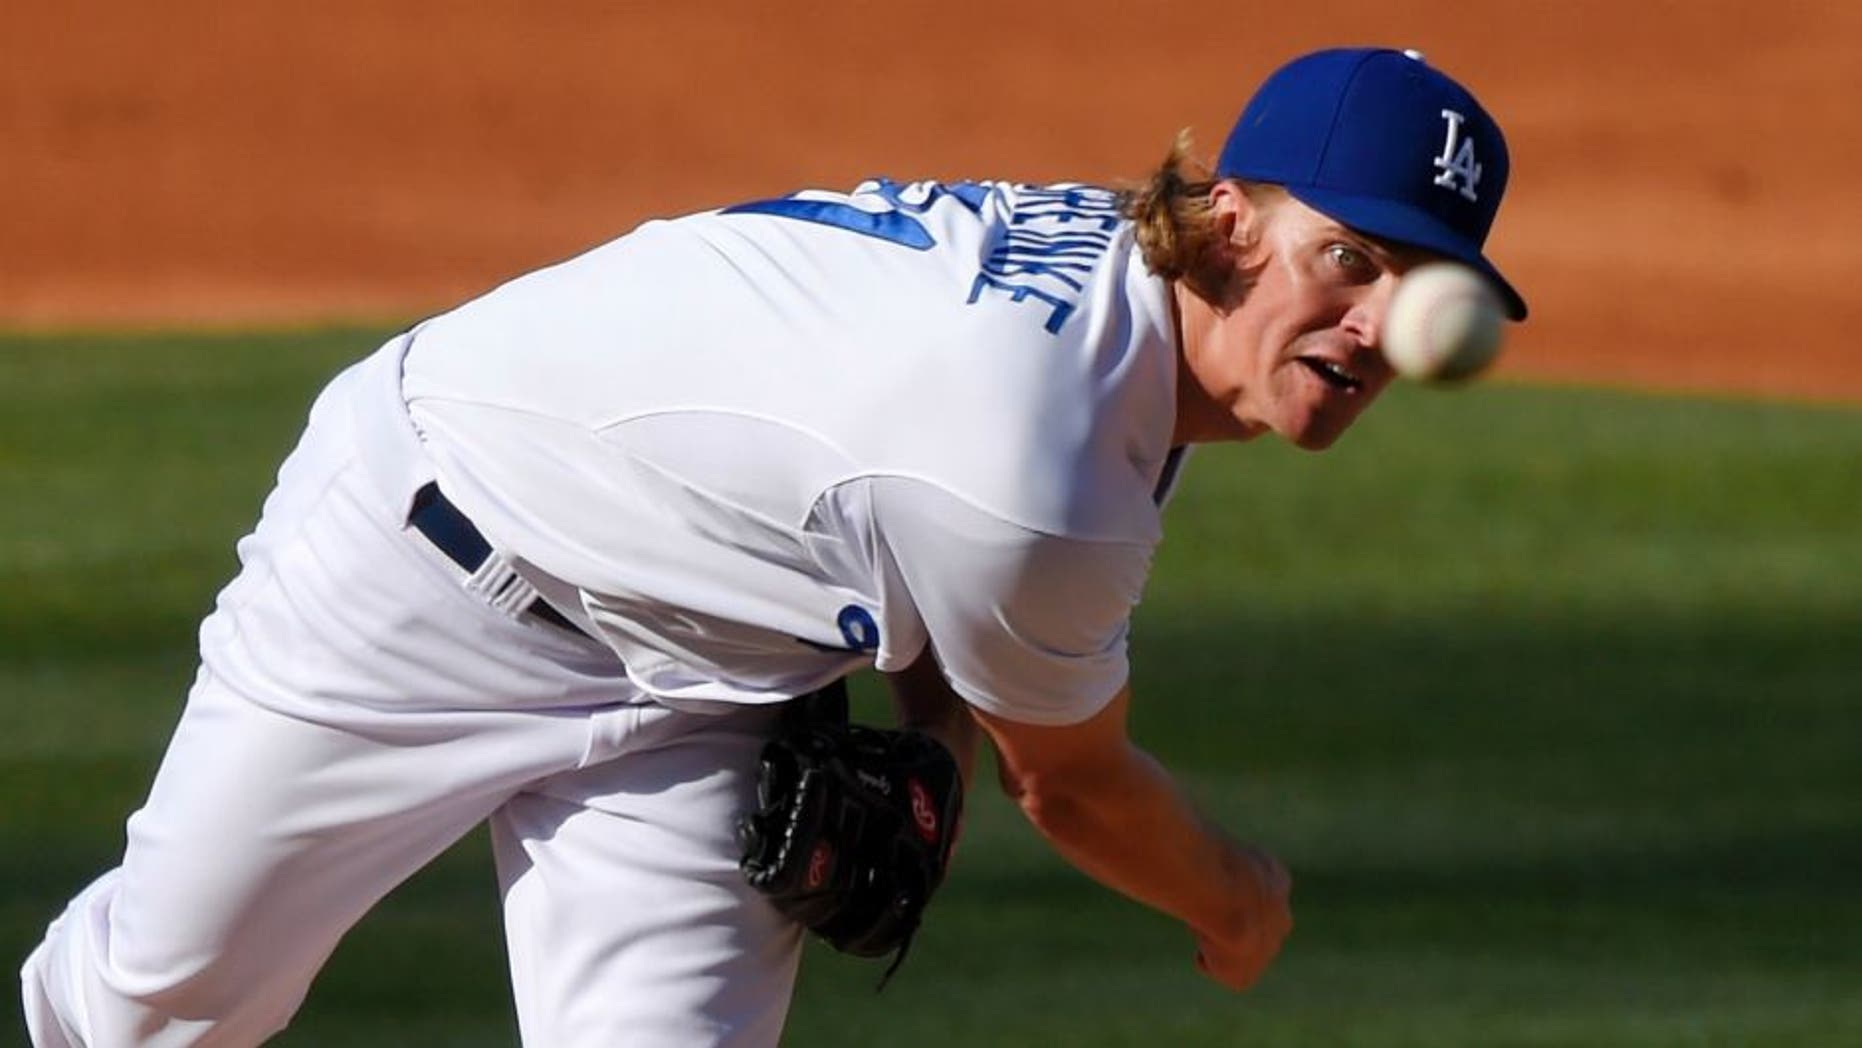 Los Angeles Dodgers starting pitcher Zack Greinke throws to the plate during the second inning of a baseball game against the St. Louis Cardinals, Sunday, June 7, 2015, in Los Angeles. (AP Photo/Mark J. Terrill)